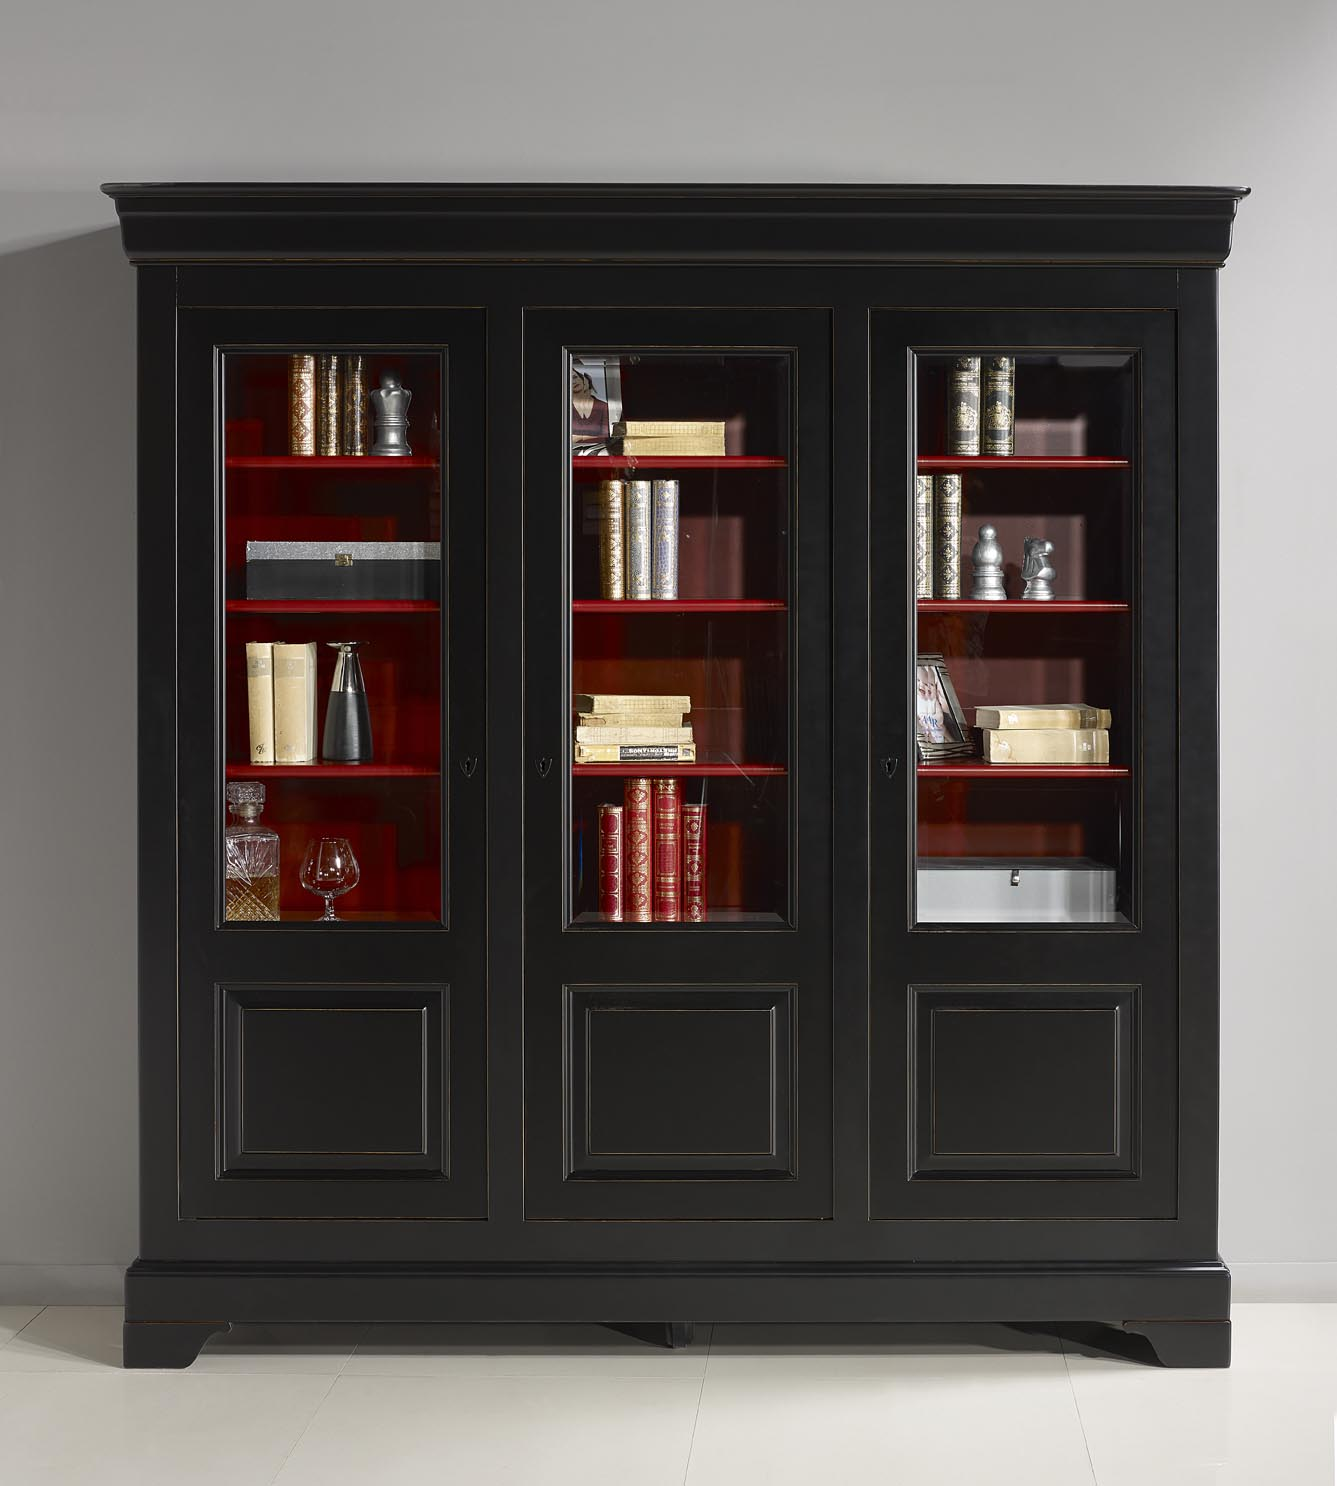 biblioteca flora 3 puertas en cerezo macizo del estilo louis philippe lacado antiguo negro y. Black Bedroom Furniture Sets. Home Design Ideas